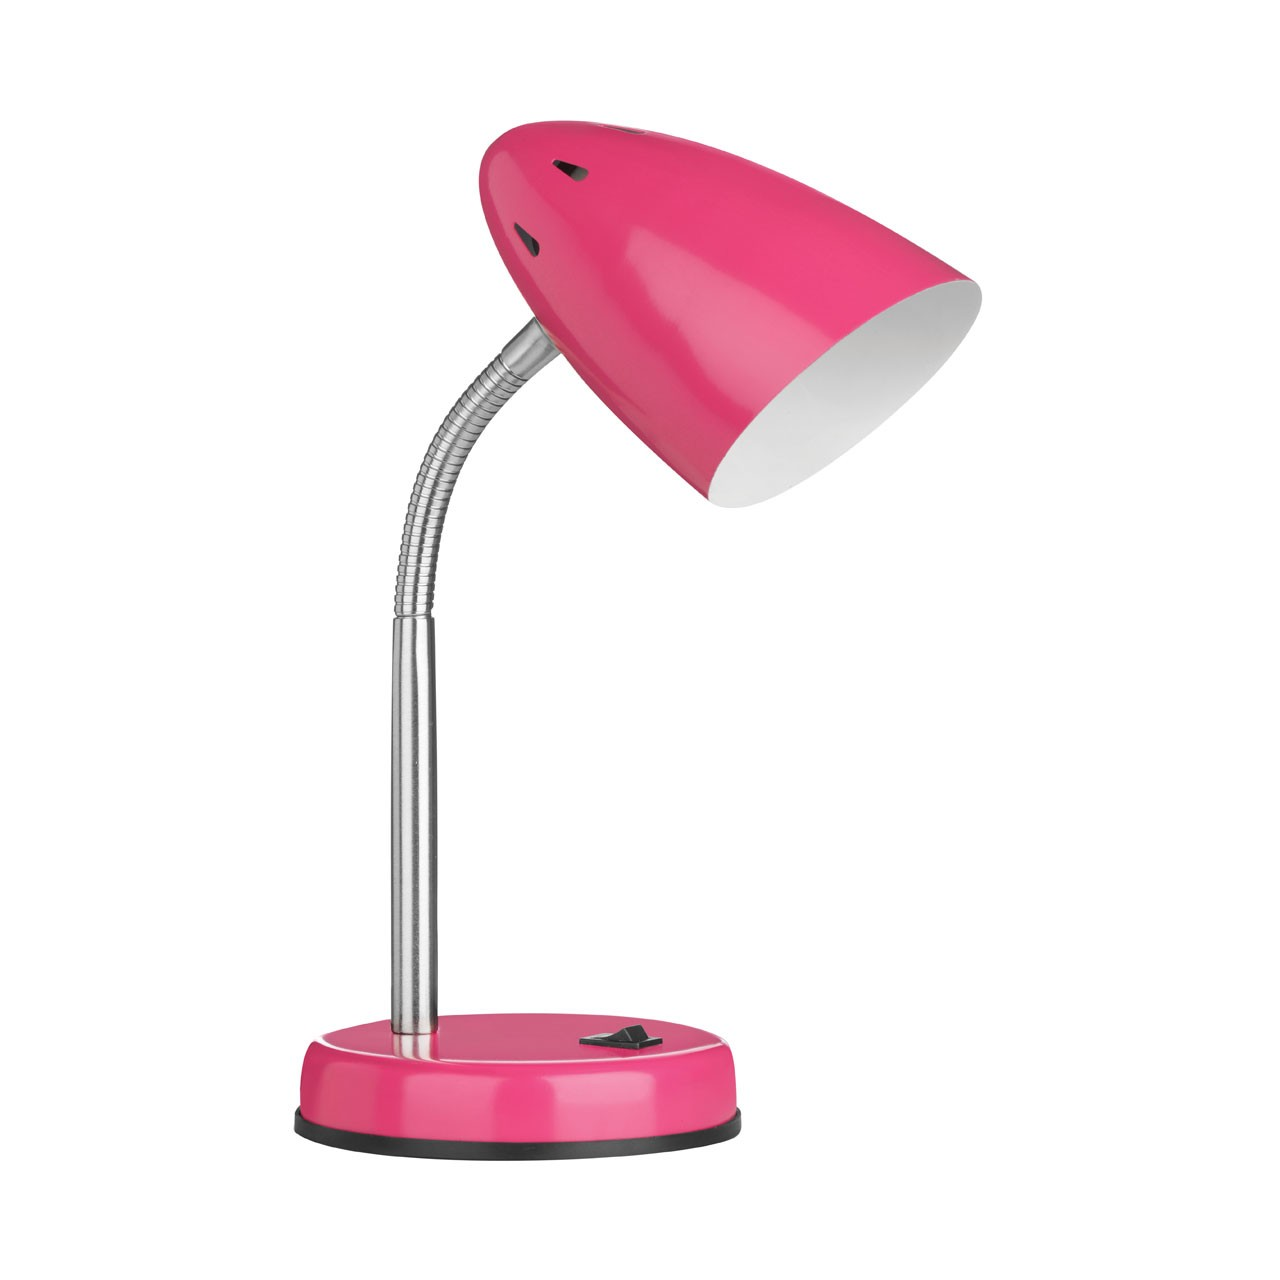 Prime Furnishing Desk Lamp - Pink